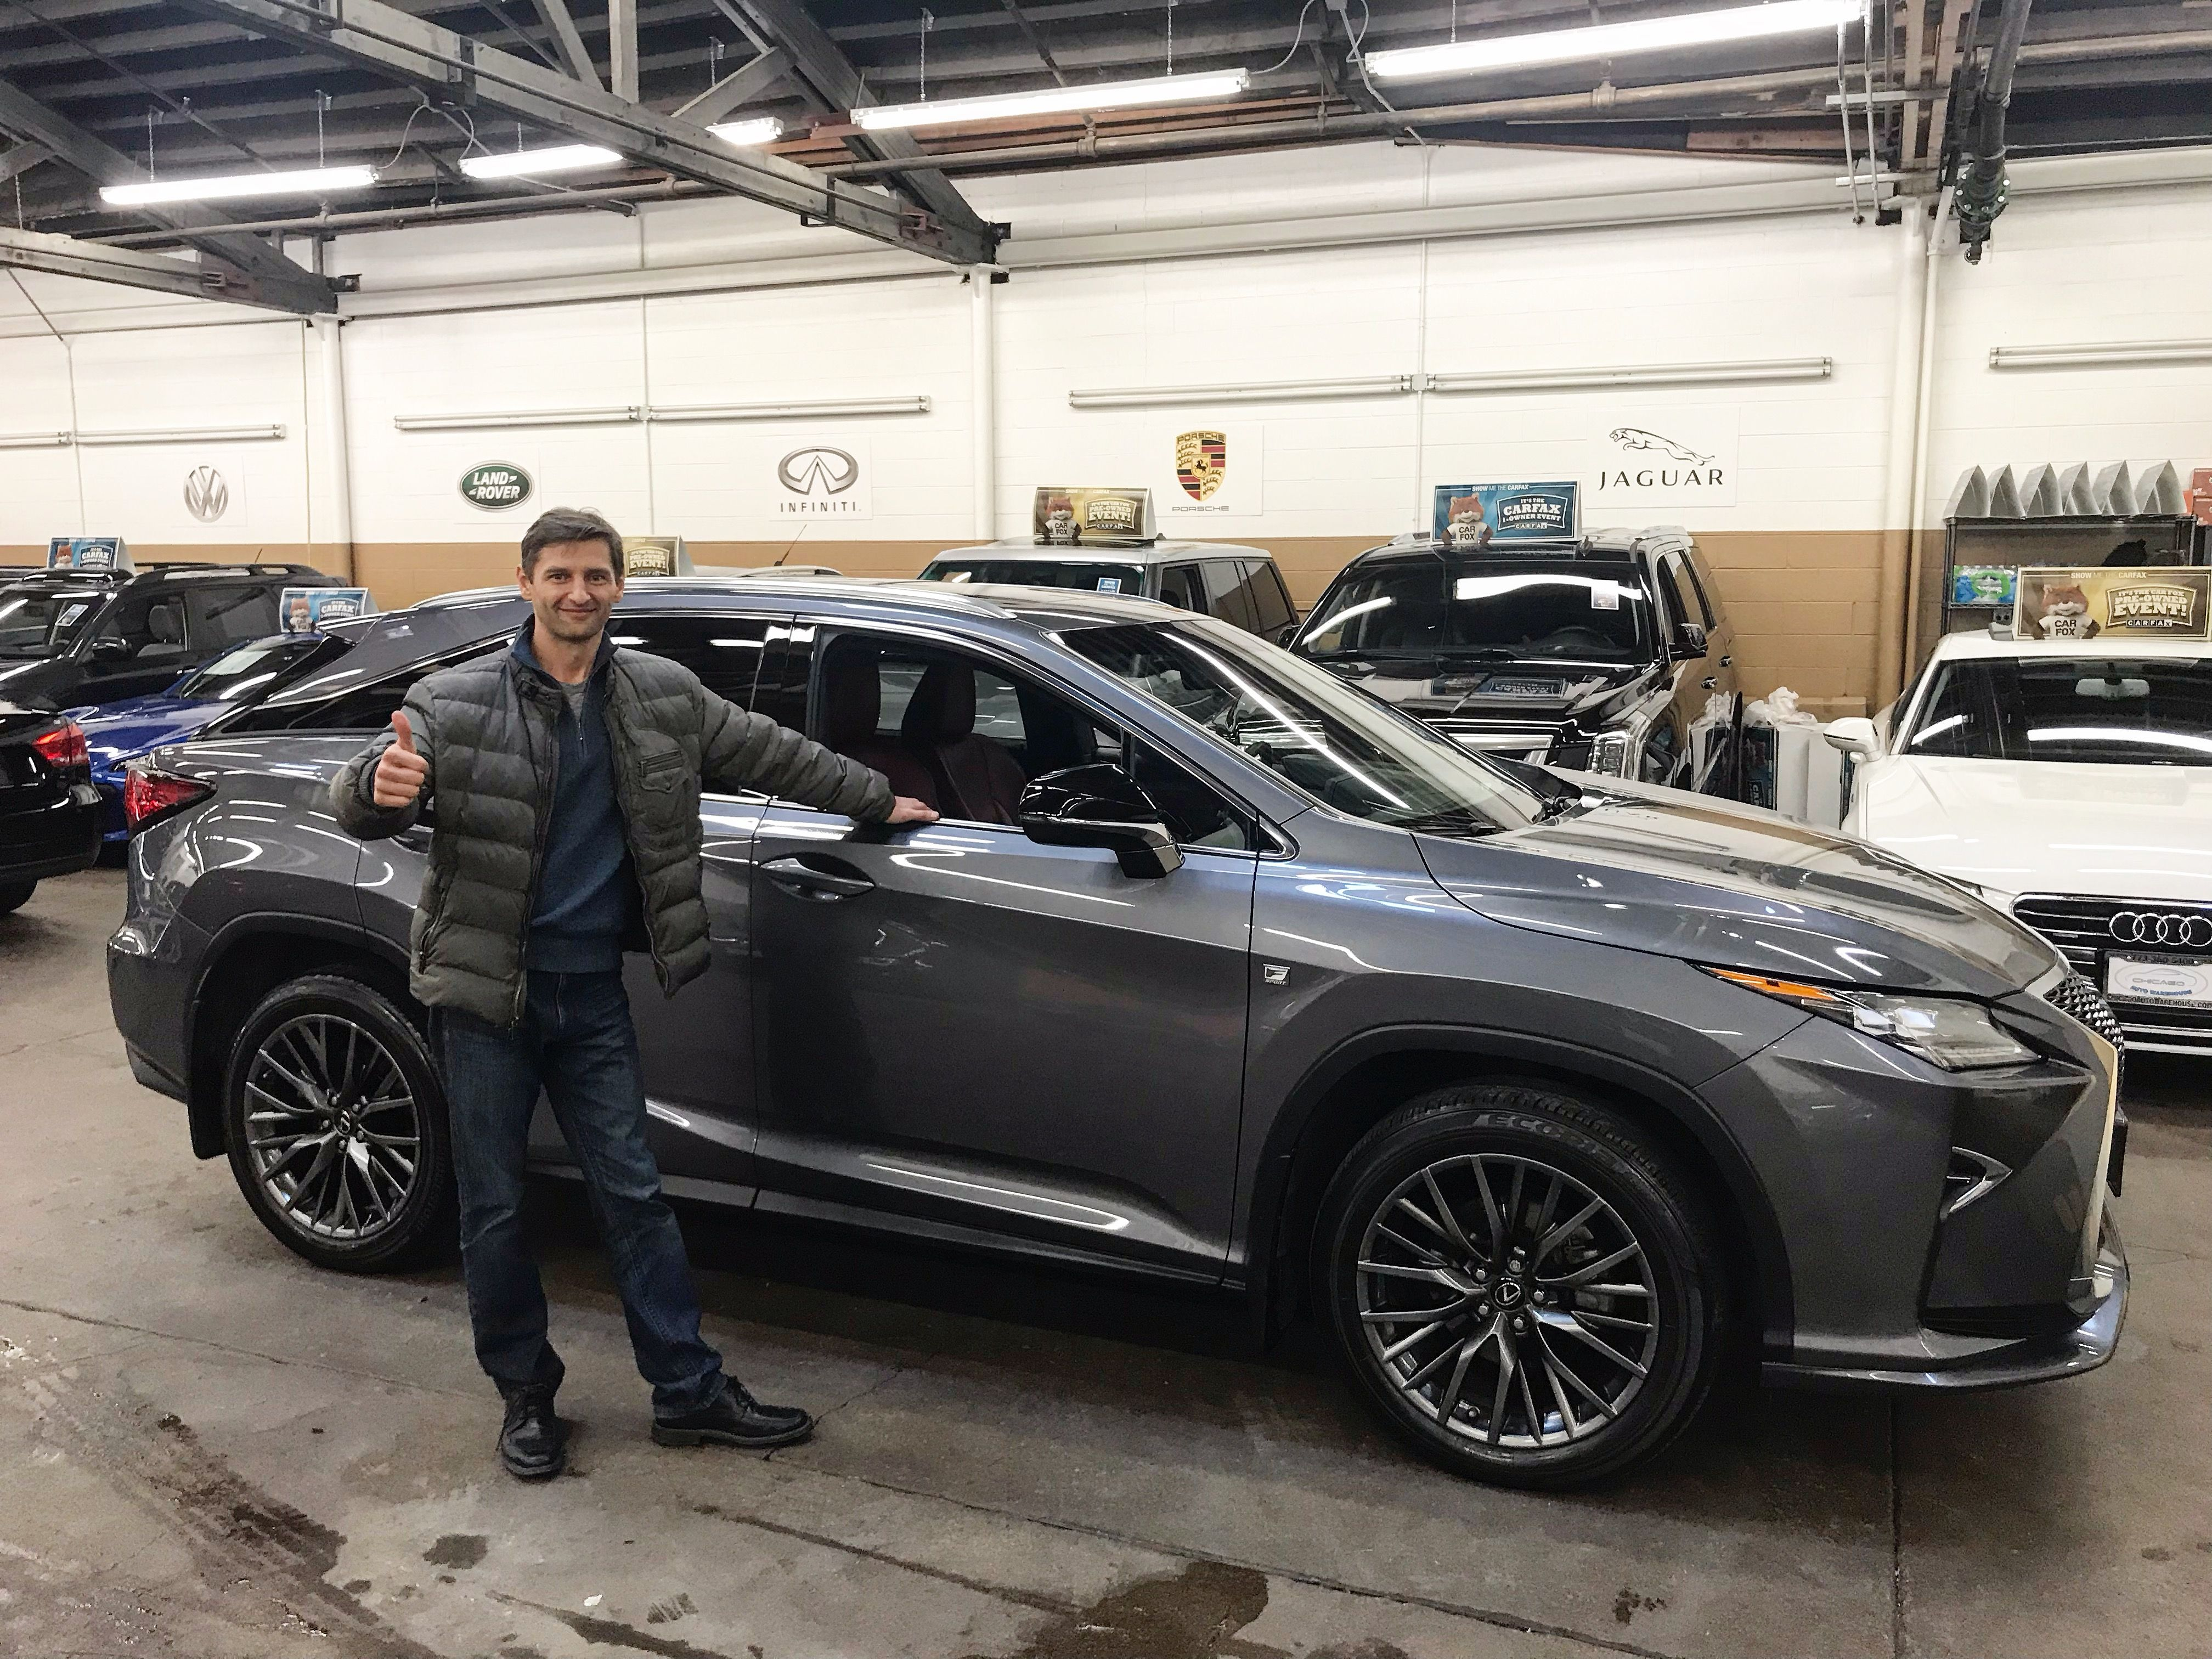 New Owner Alert Chicago Auto Warehouse Thank You Mark For Your Purchase And Enjoy Your New Lexus Rx New Lexus Car Dealership Car Dealer